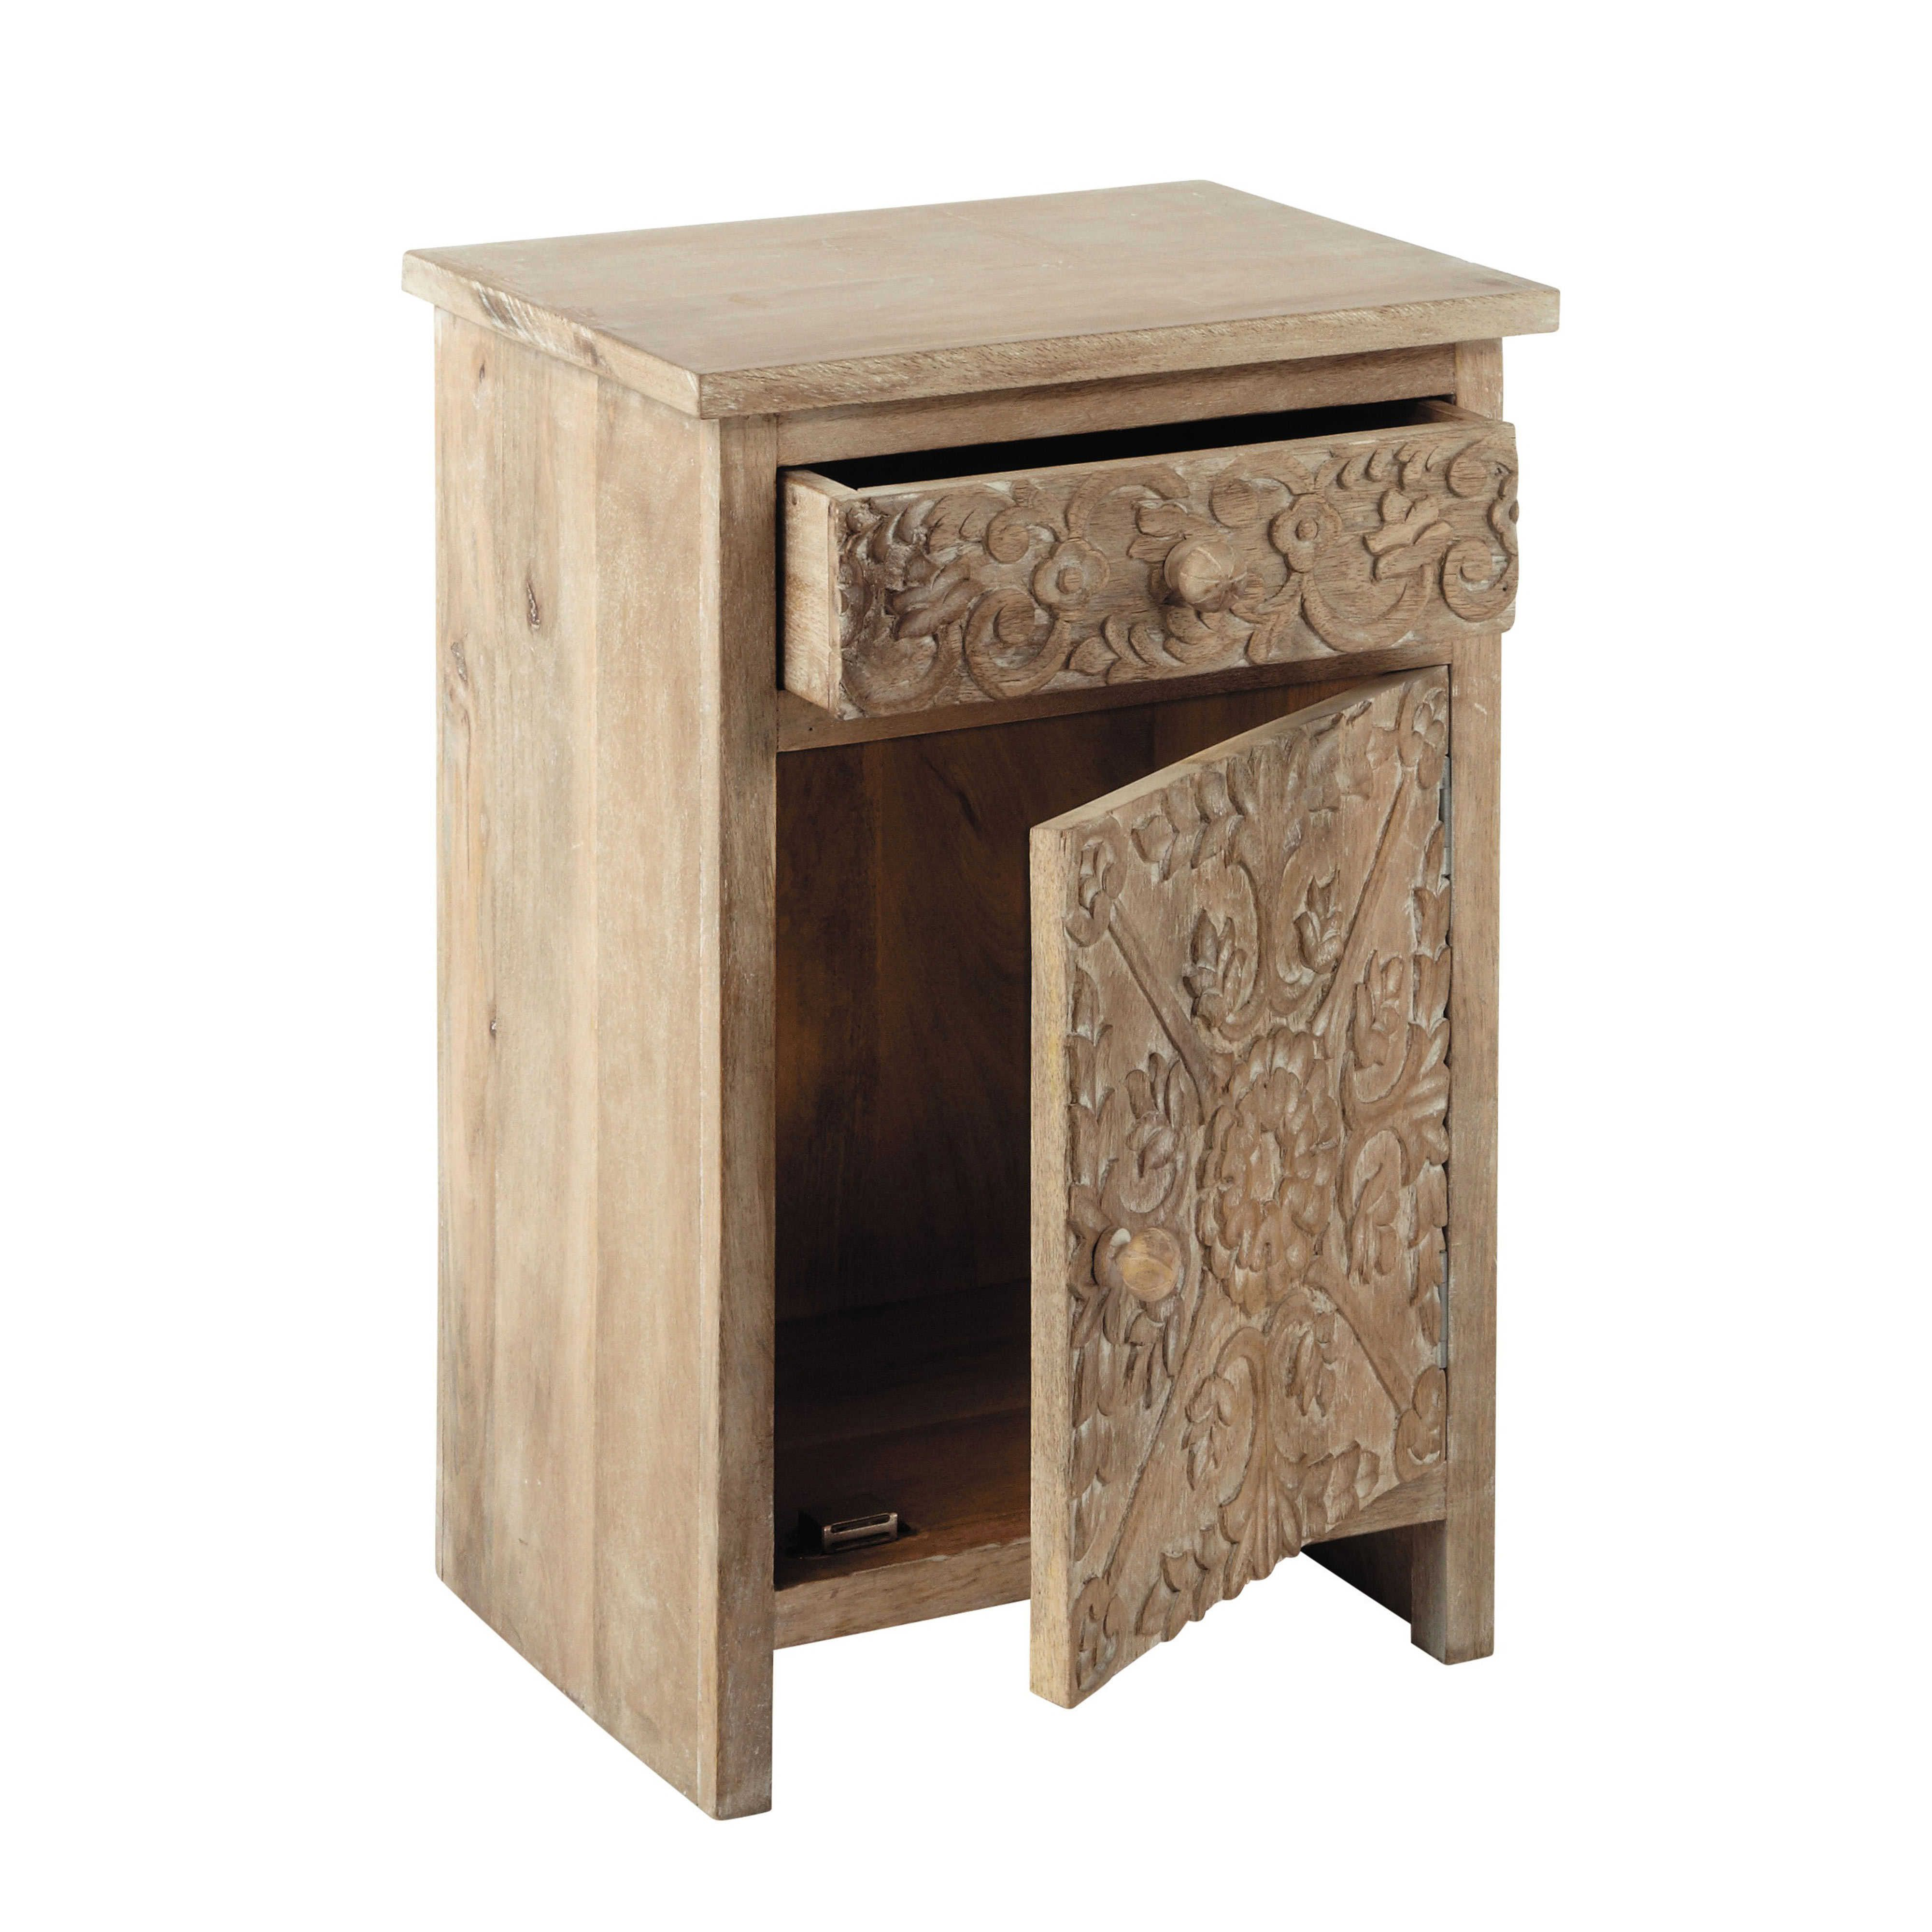 Carved Solid Mango Wood Bedside Table With Drawer In Whitewash Maisons Du Monde Table De Chevet Table De Chevet Blanche Deco Maison Du Monde